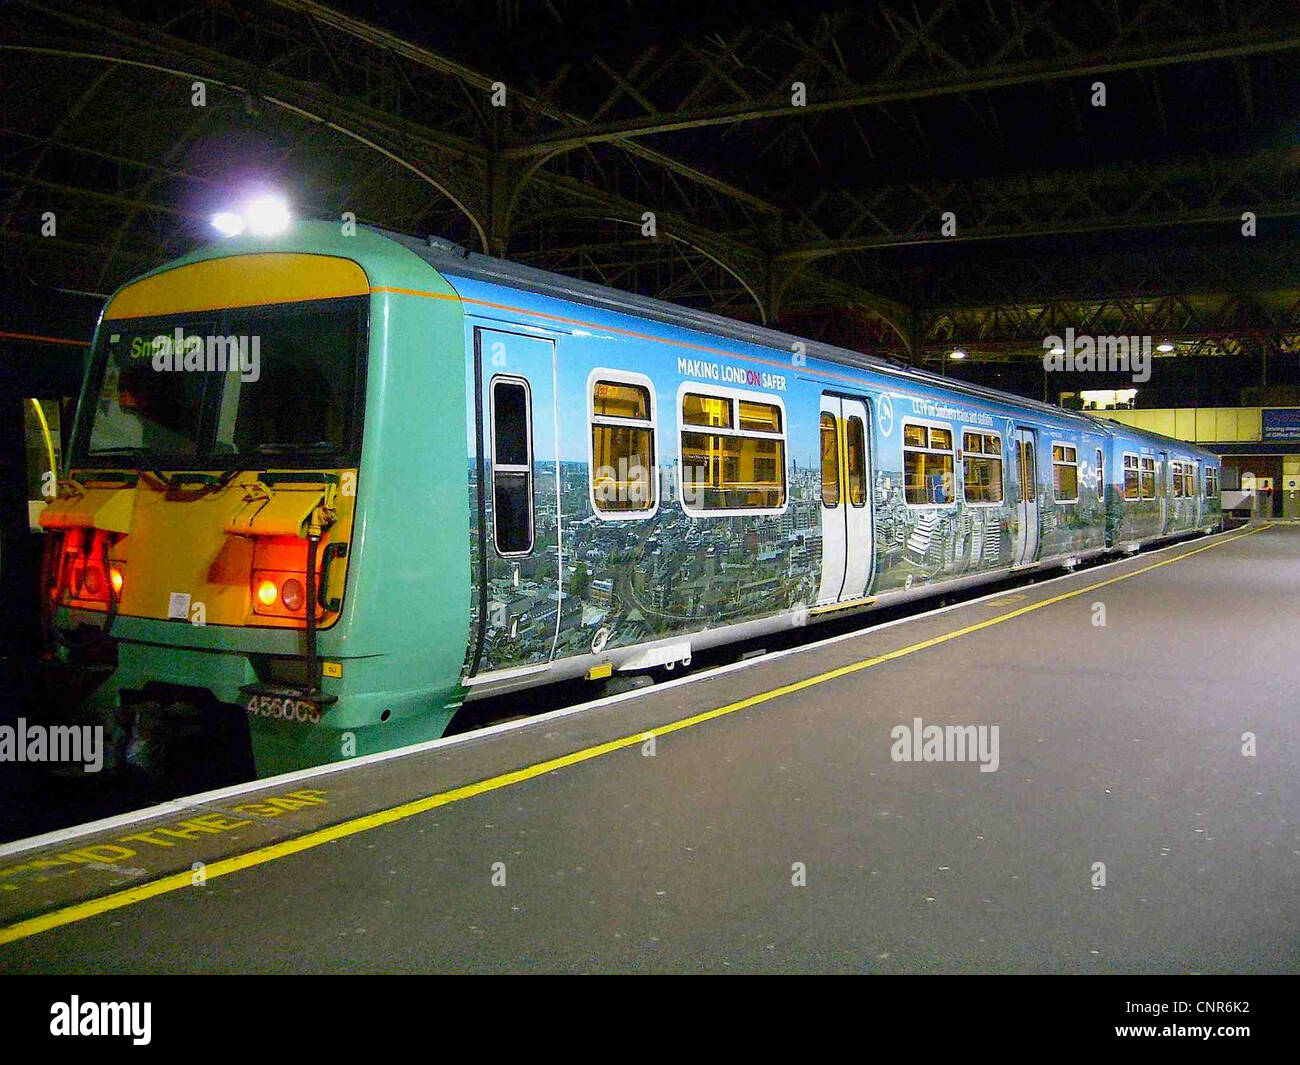 The joint Southern/TfL CCTV advertising livery on Southern Metro Class 456 No. 456006 at London Bridge - Stock Image